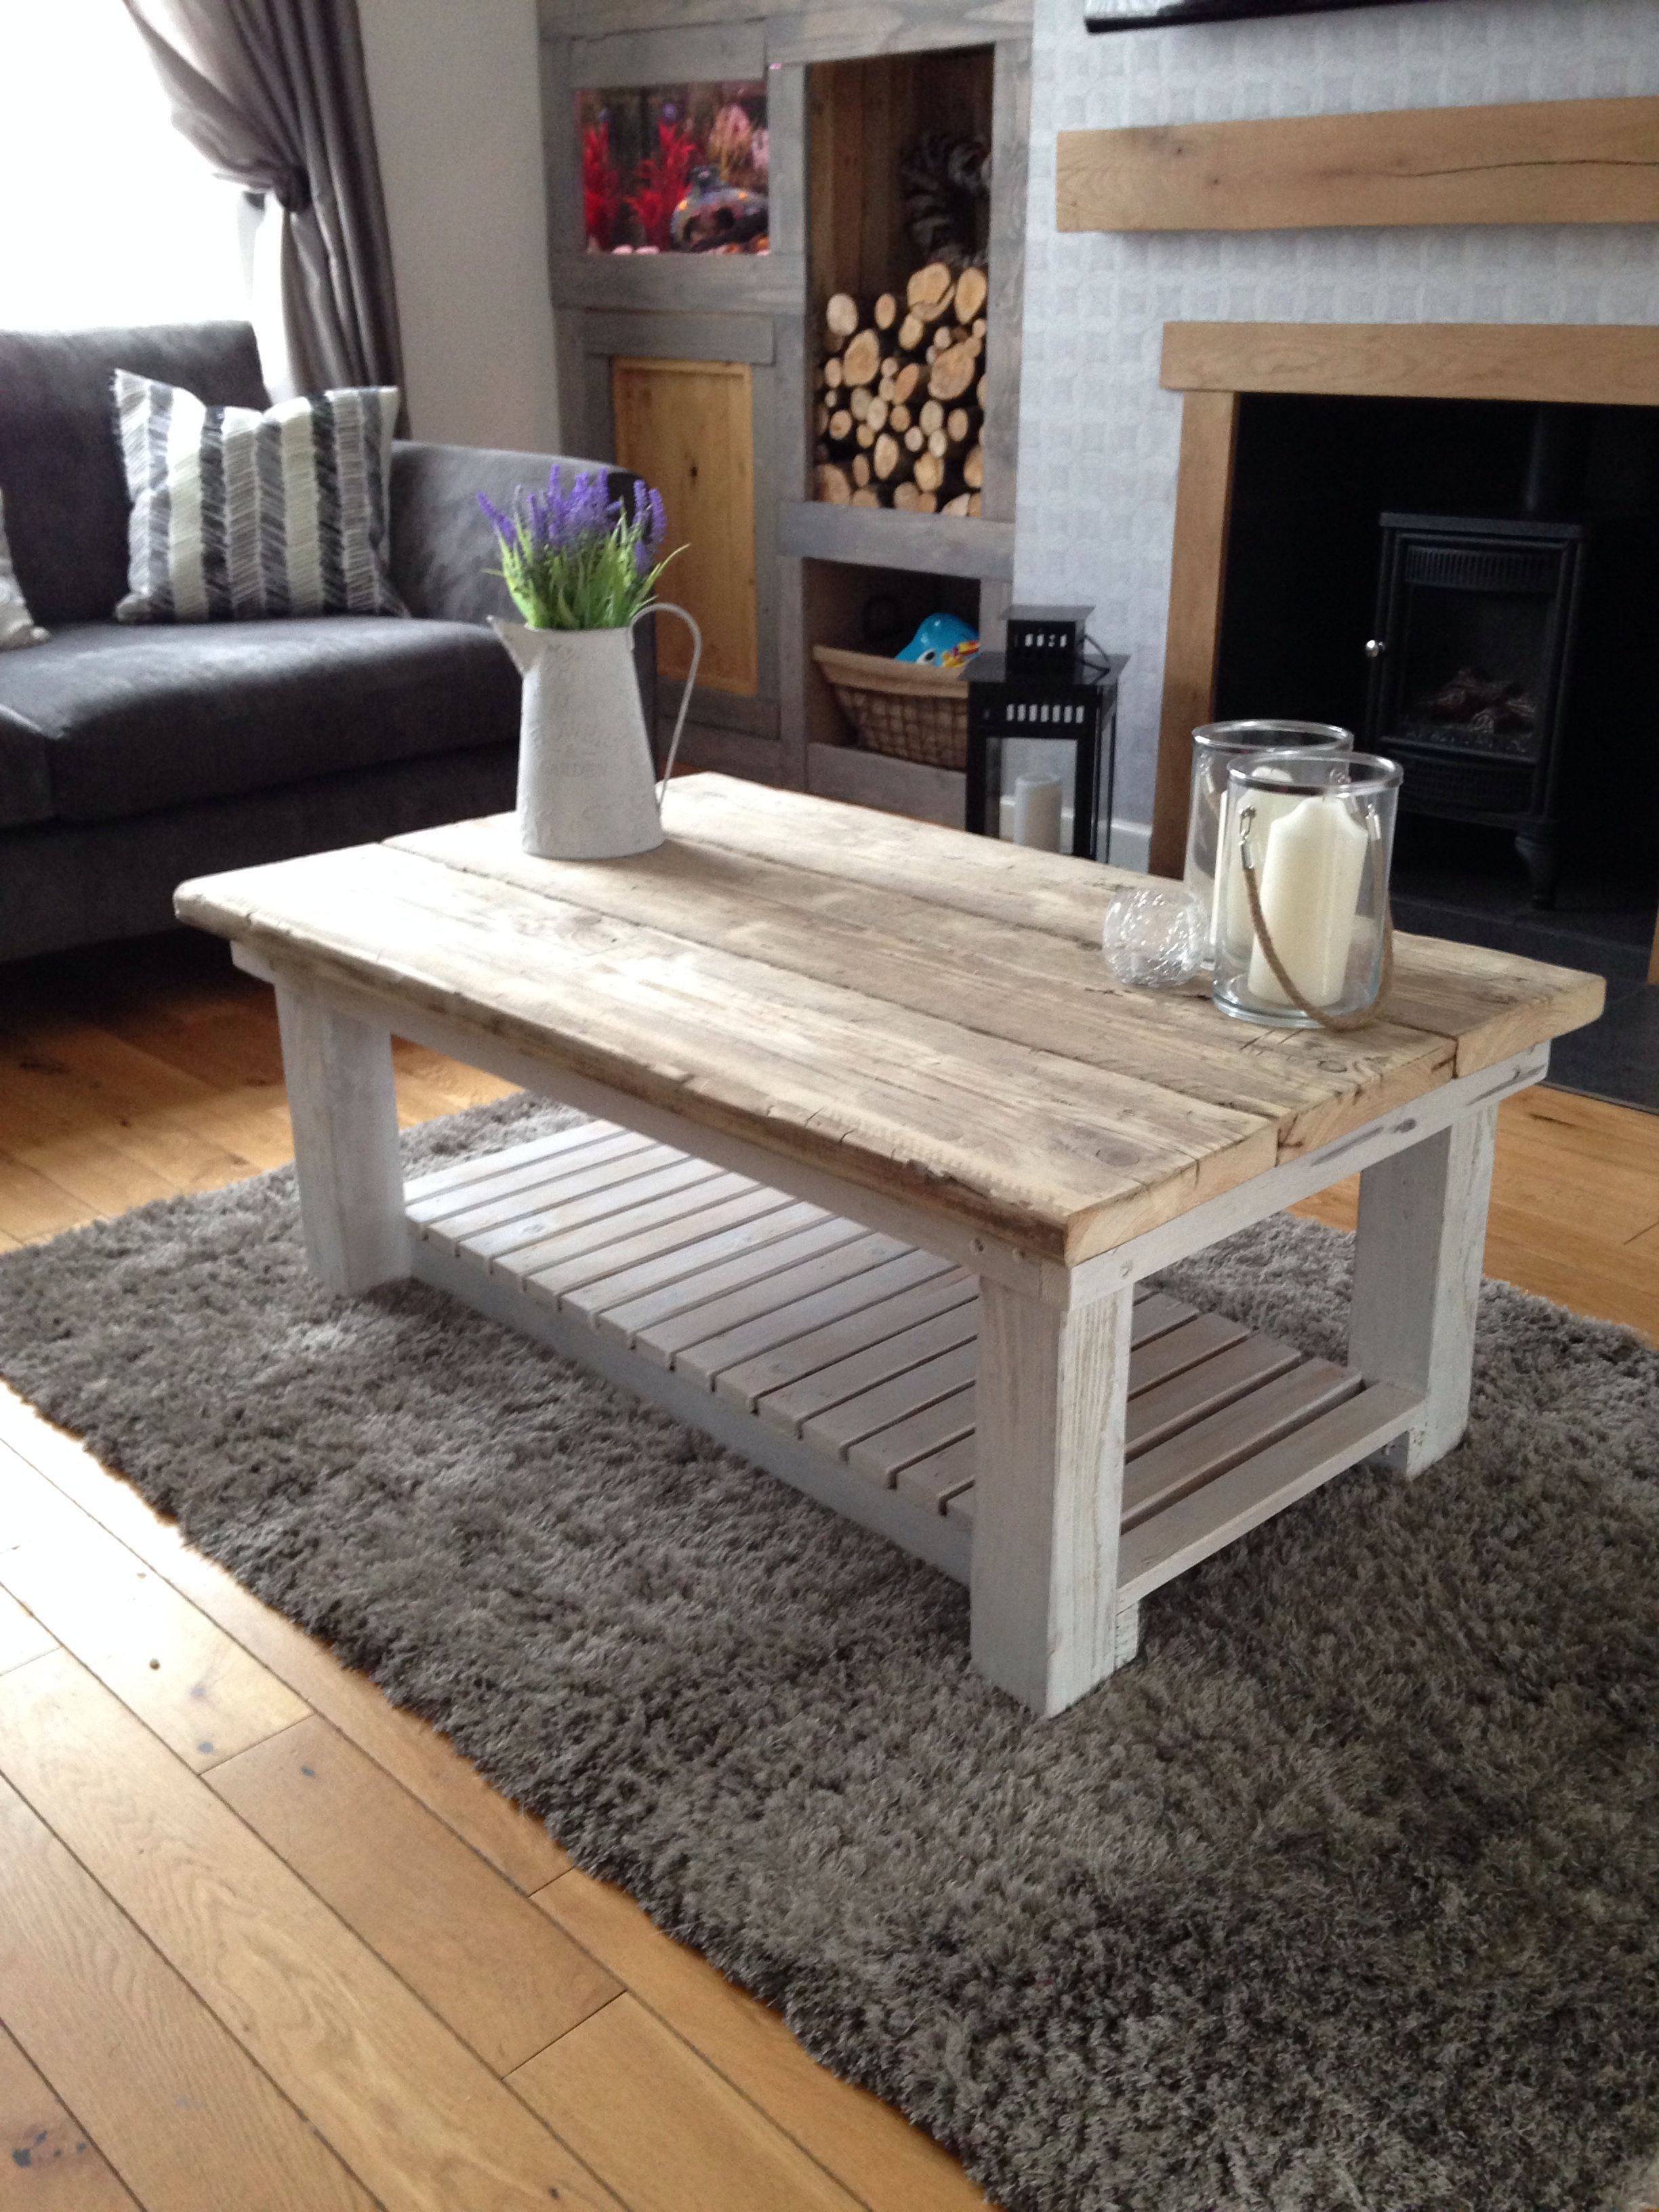 Good Photographs Scaffold Board Garden Table Tips We Pride Ourselves On The Excellent Good In 2021 Chic Coffee Table Shabby Chic Coffee Table Coffee Table Inspiration [ 3264 x 2448 Pixel ]